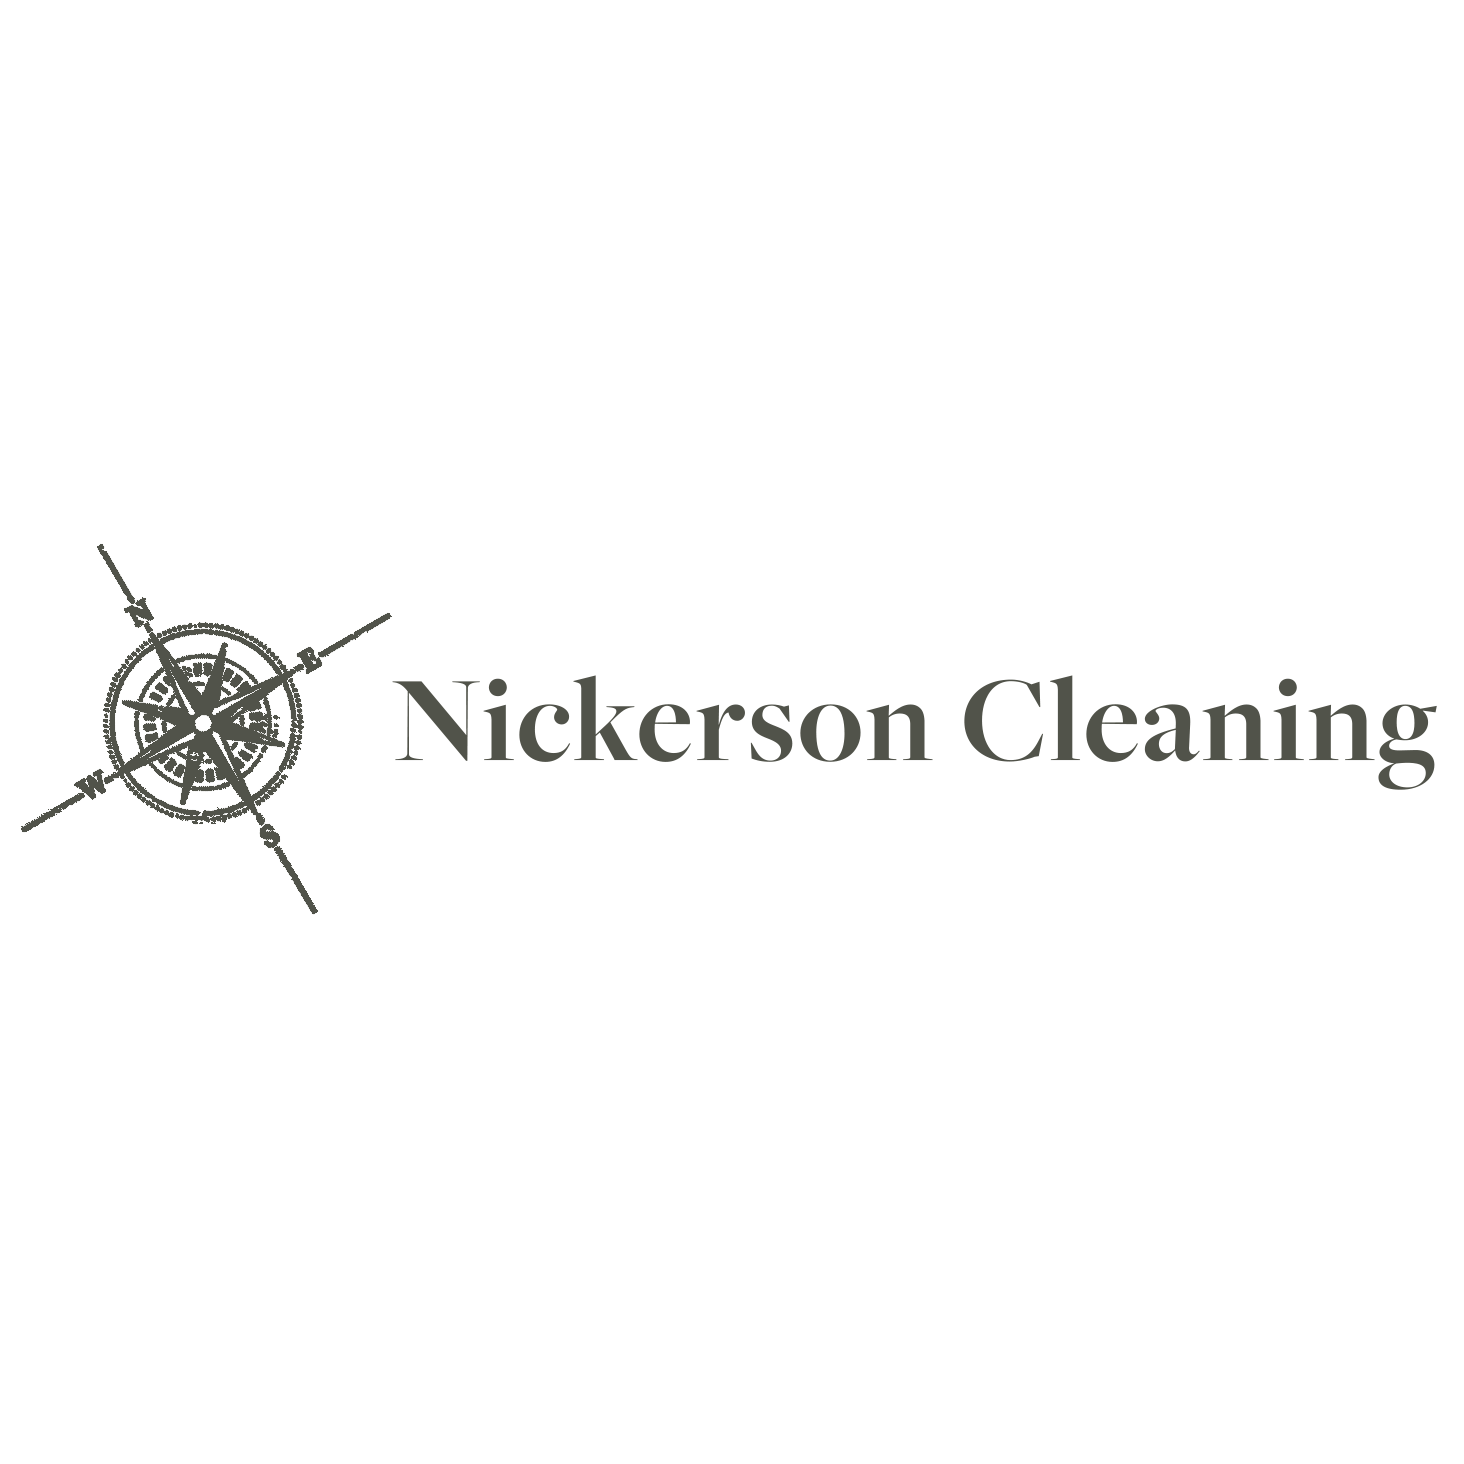 House Cleaning Service in MA Harwich 02645 Nickerson Cleaning 16 Katies Pond Ln  (508)237-2621